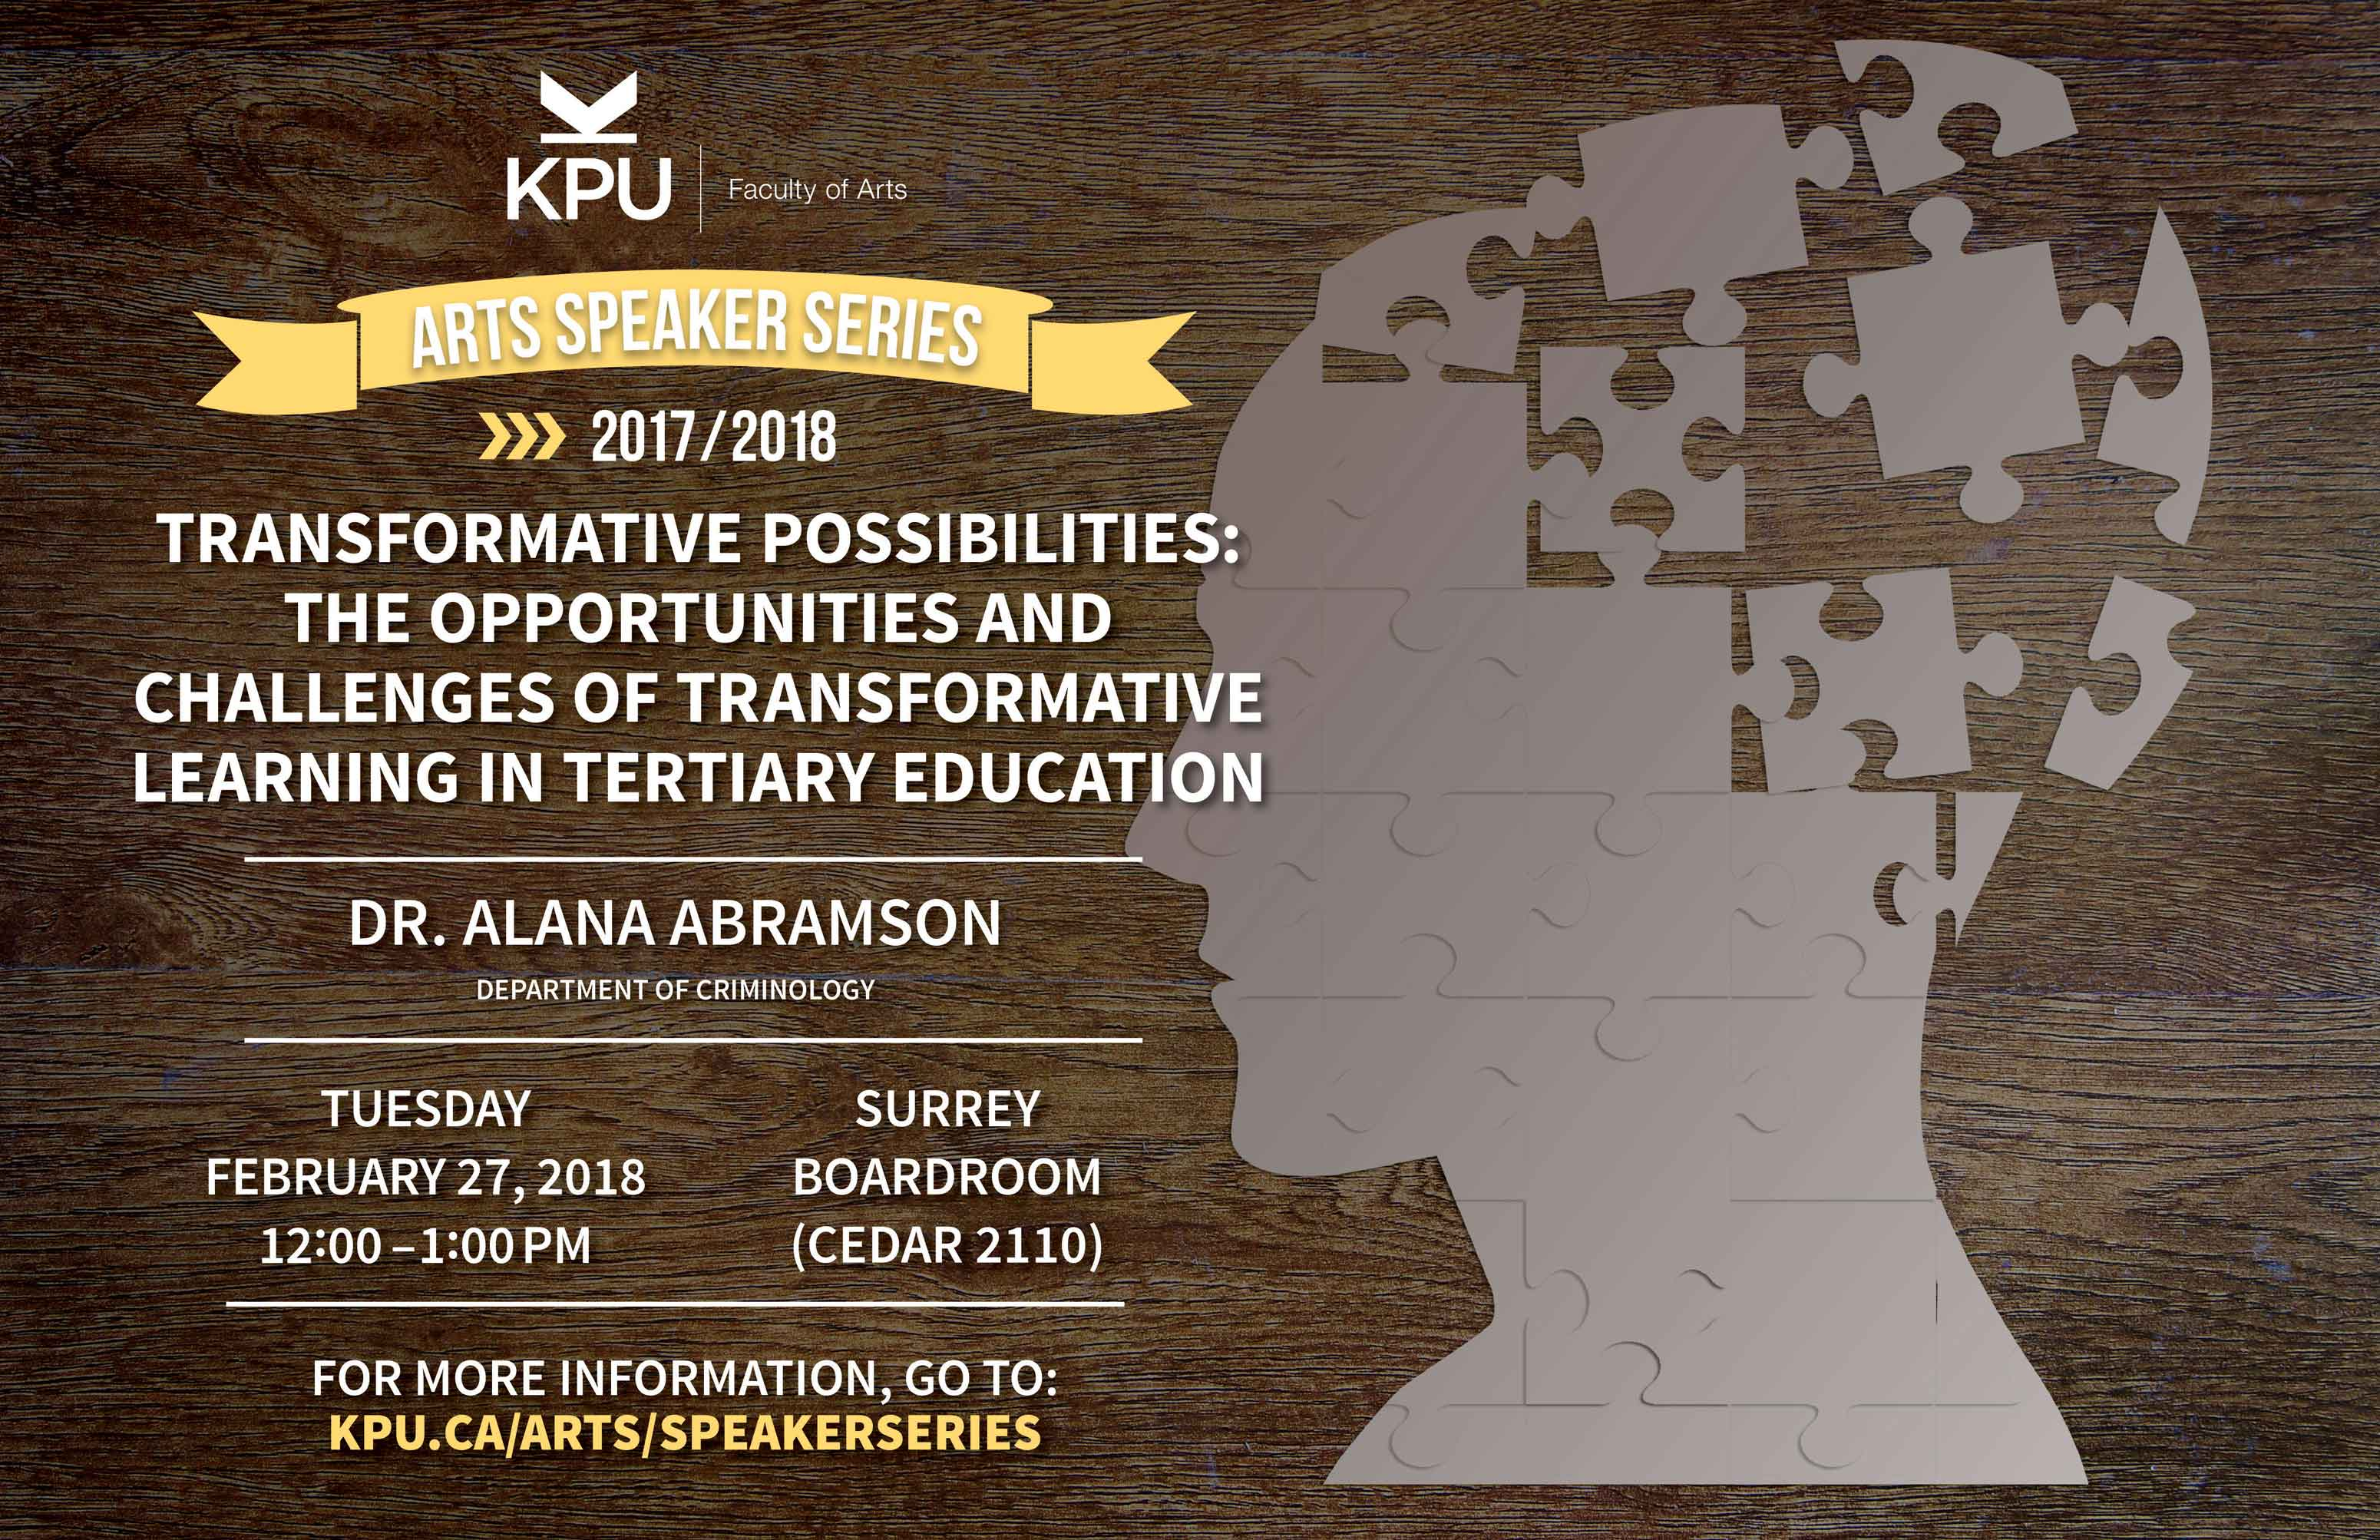 Transformative Possibilities: The Opportunities and Challenges of Transformative Learning in Tertiary Education